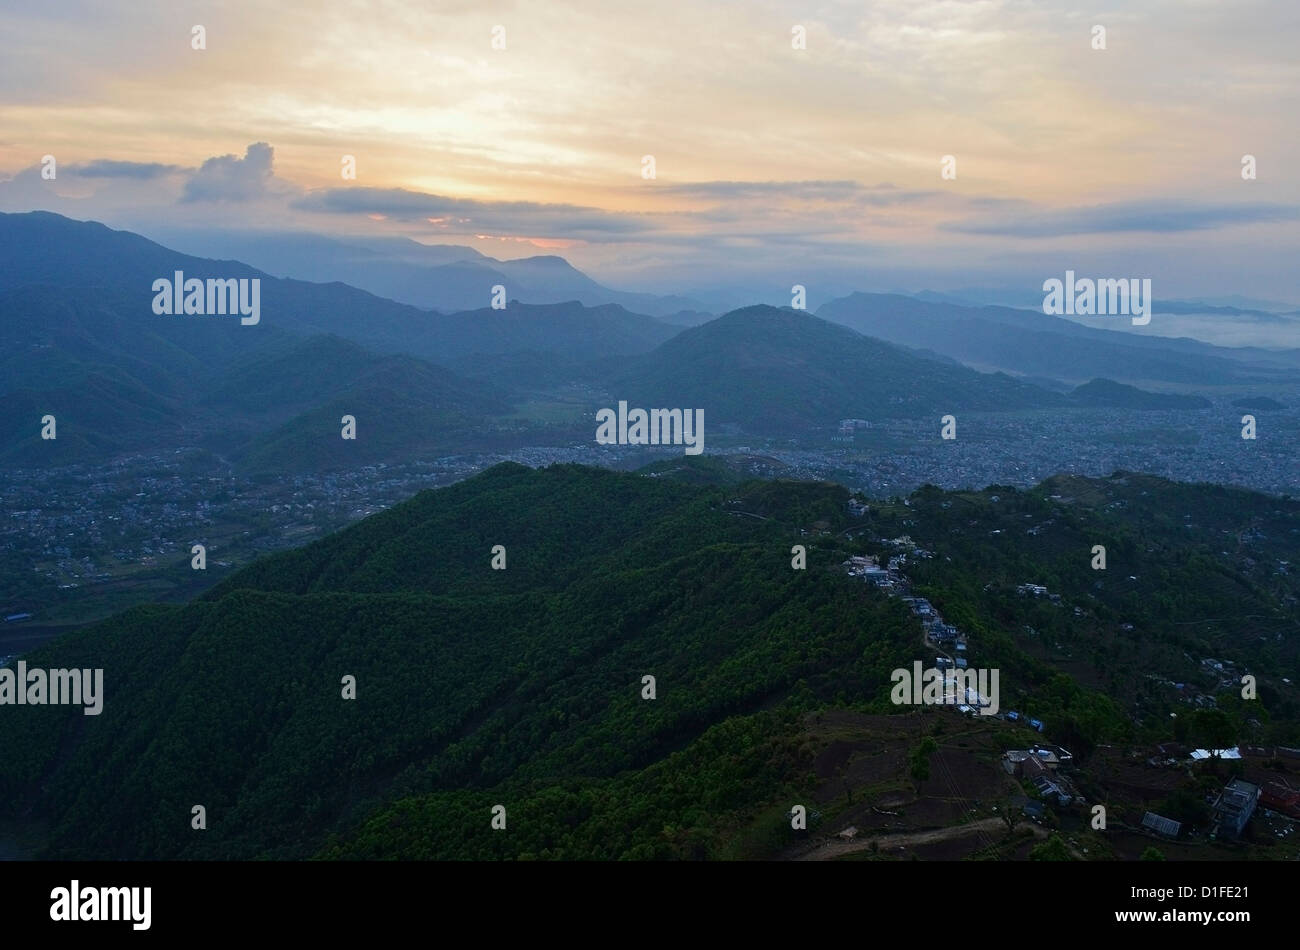 View of Pokhara from Sarangkot, Gandaki Zone, Western Region, Nepal, Asia - Stock Image